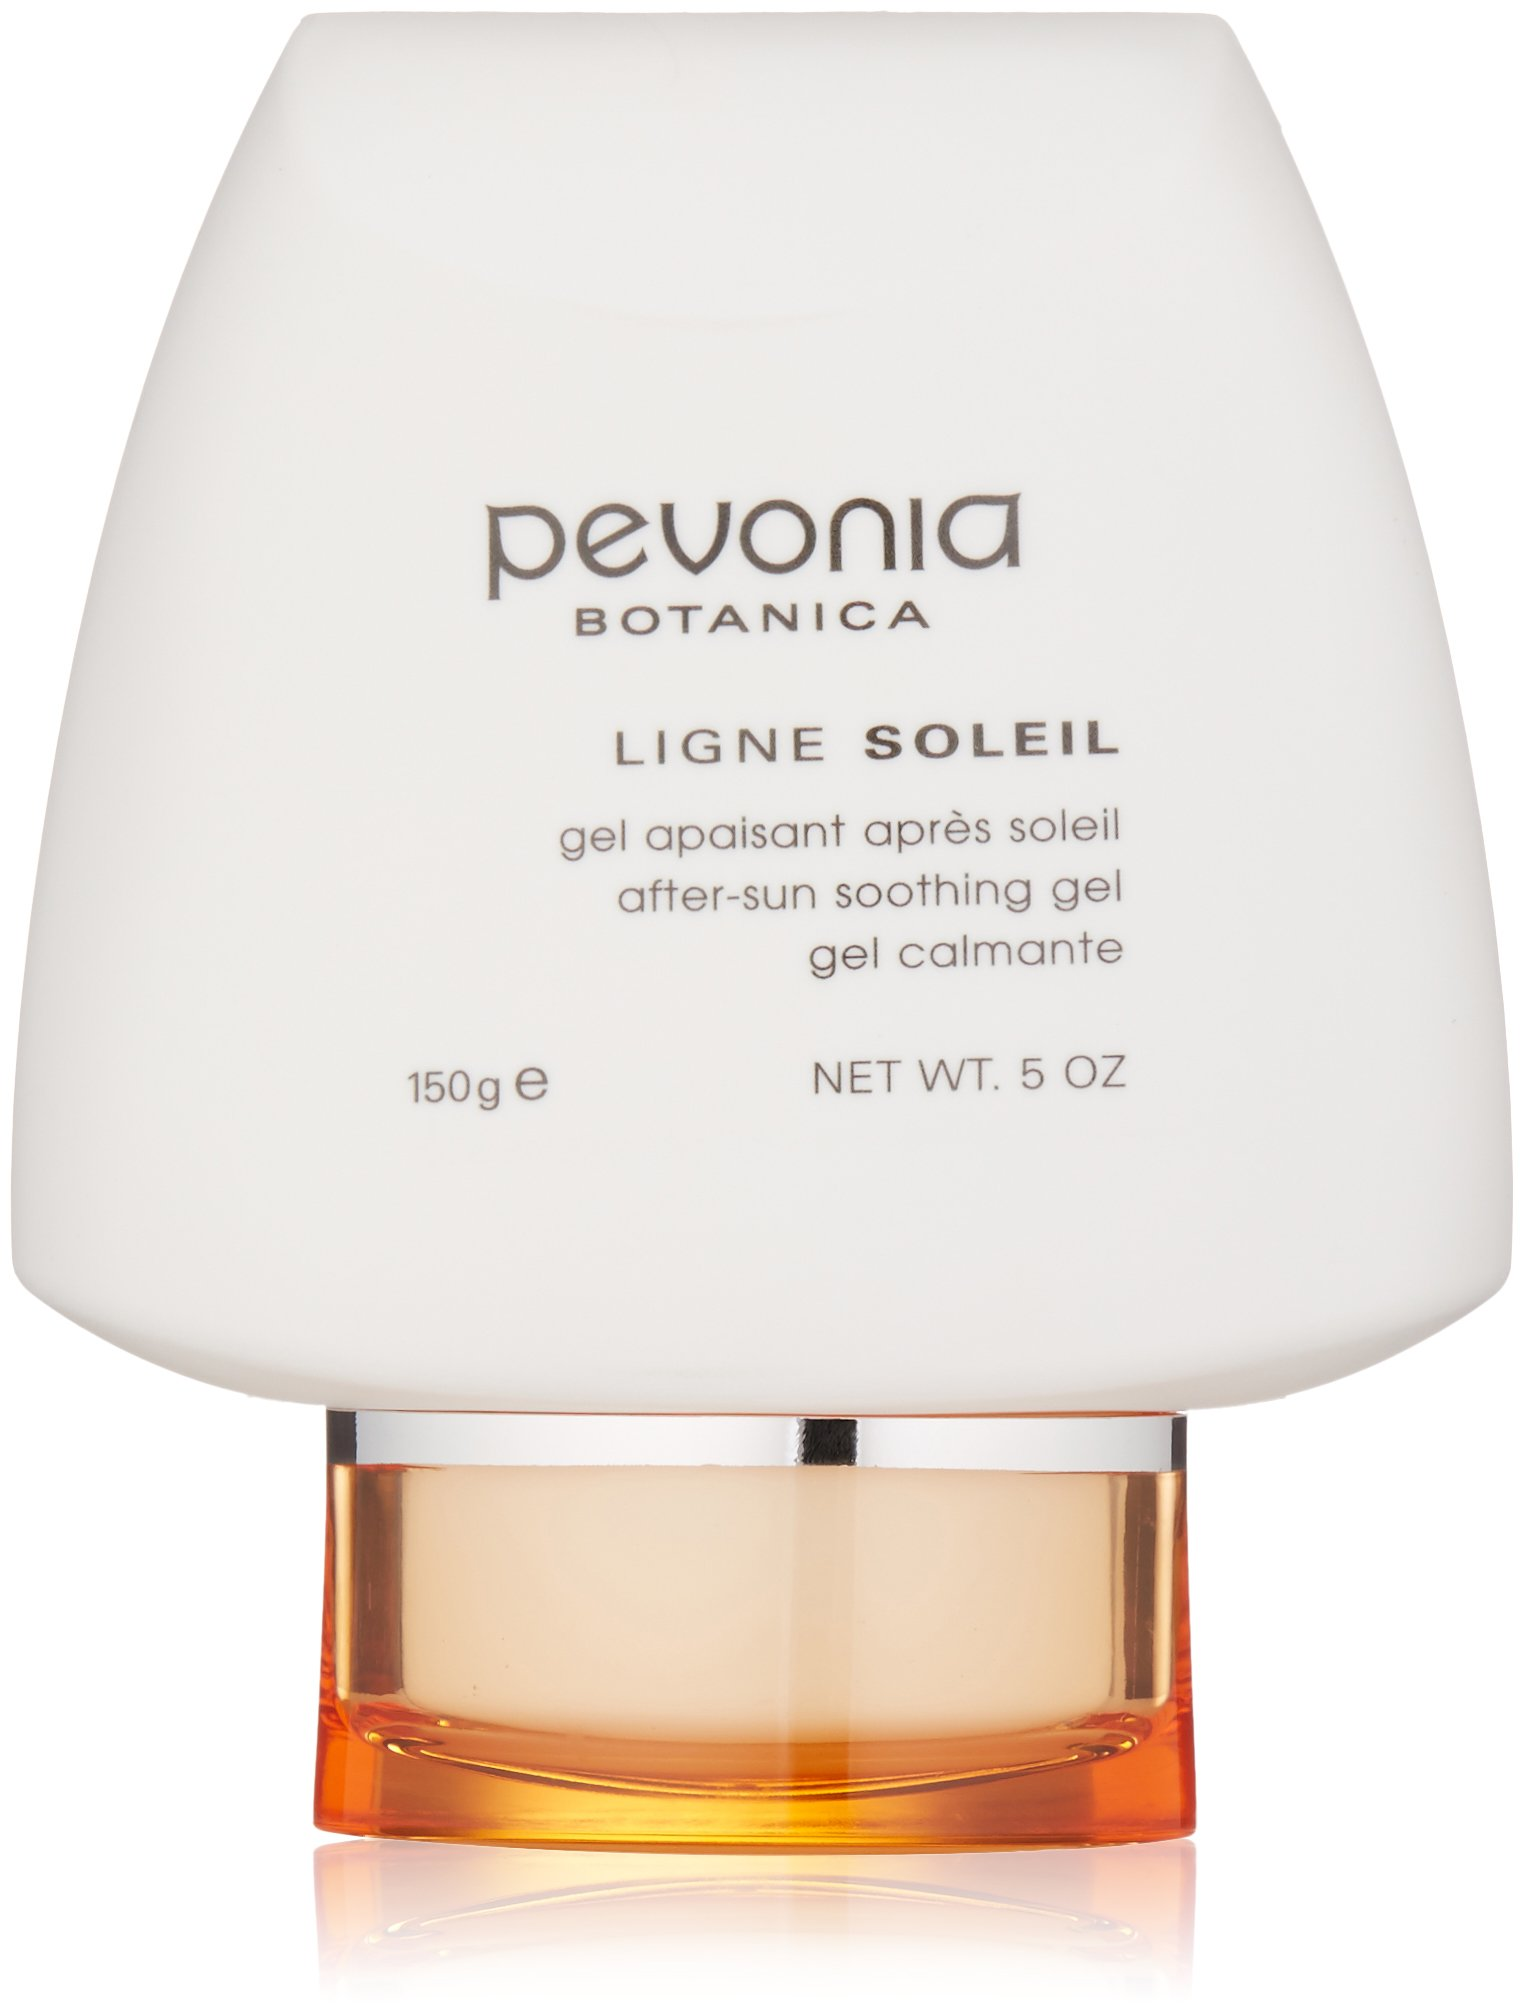 Pevonia Ligne Soleil After Sun Soothing Gel, 5 oz